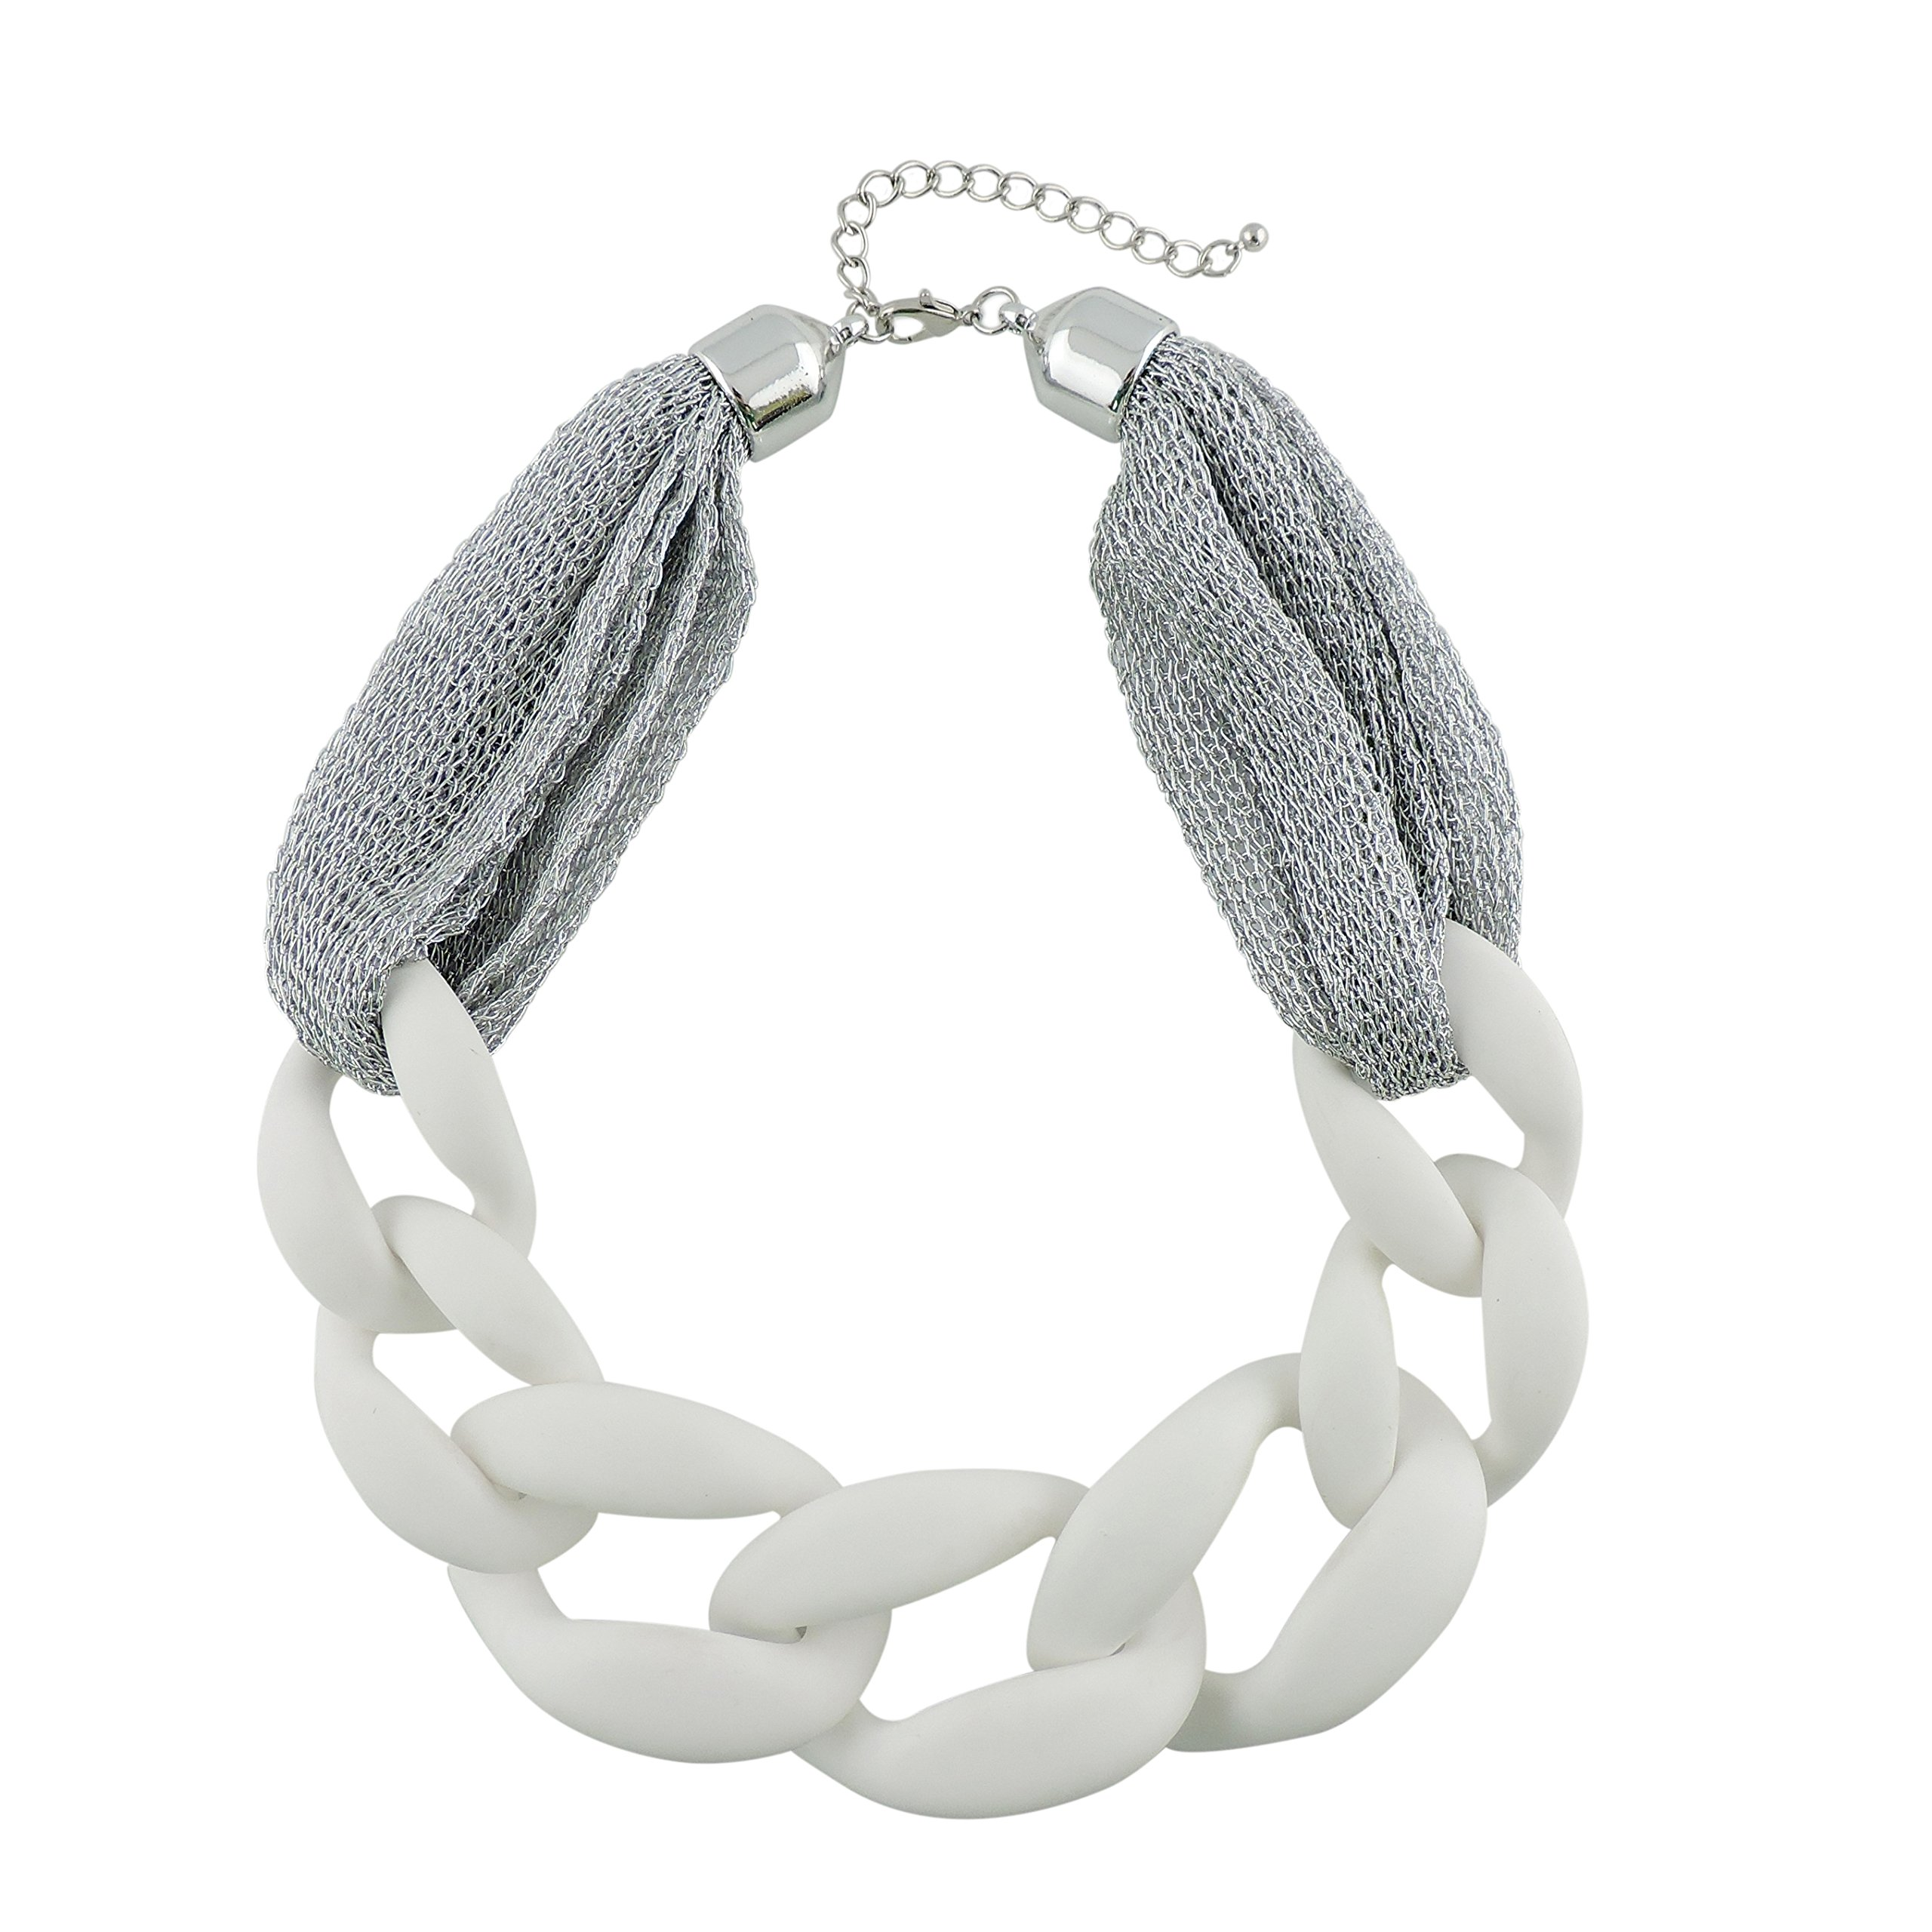 BOCAR Statement Chunky Fashion Acrylic Paint Beads Choker Net Chain Necklace for Women Gifts (NK-10510-white)